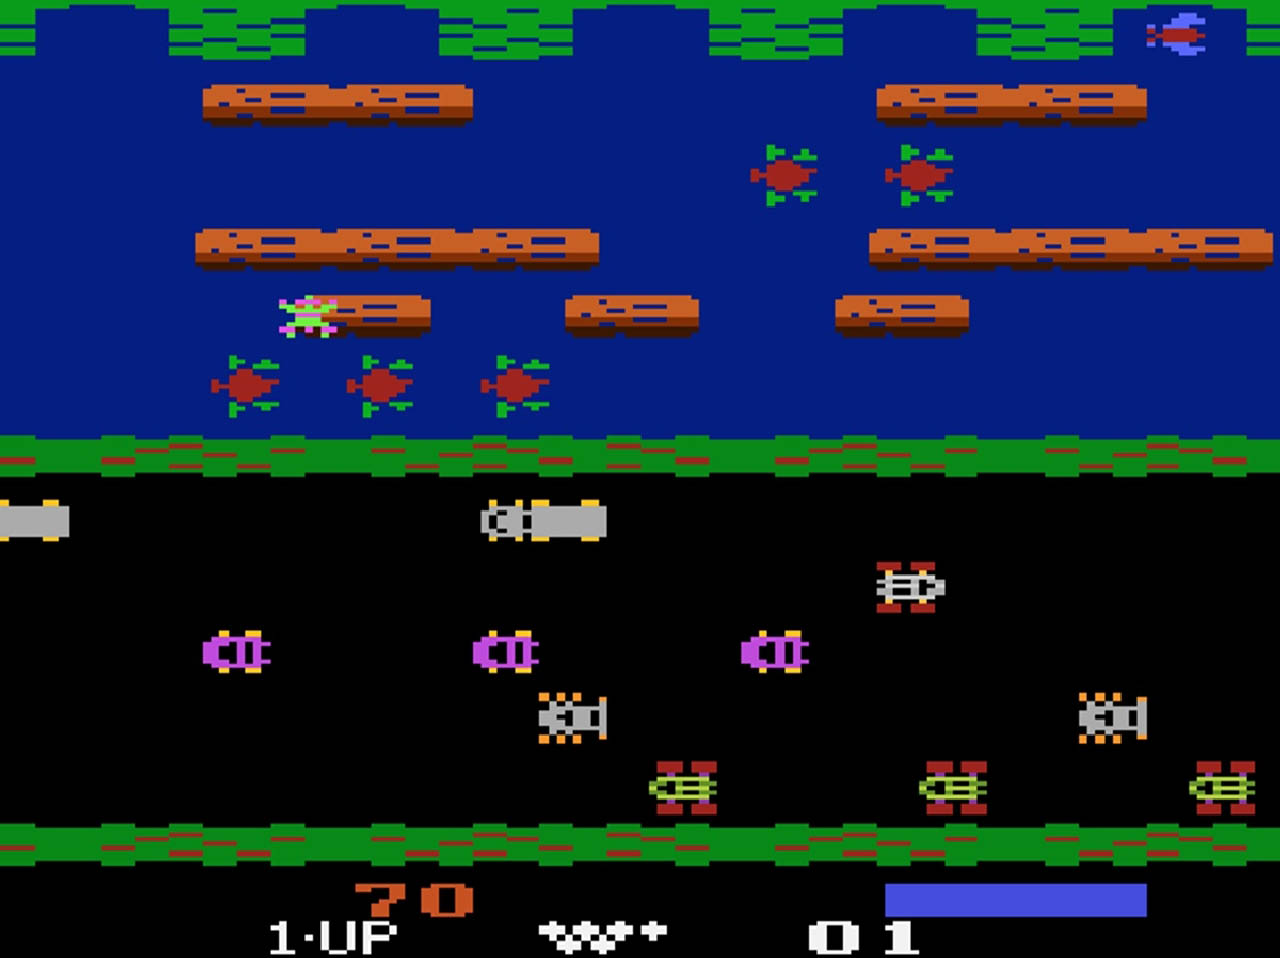 Empathy in Game Design - Frogger